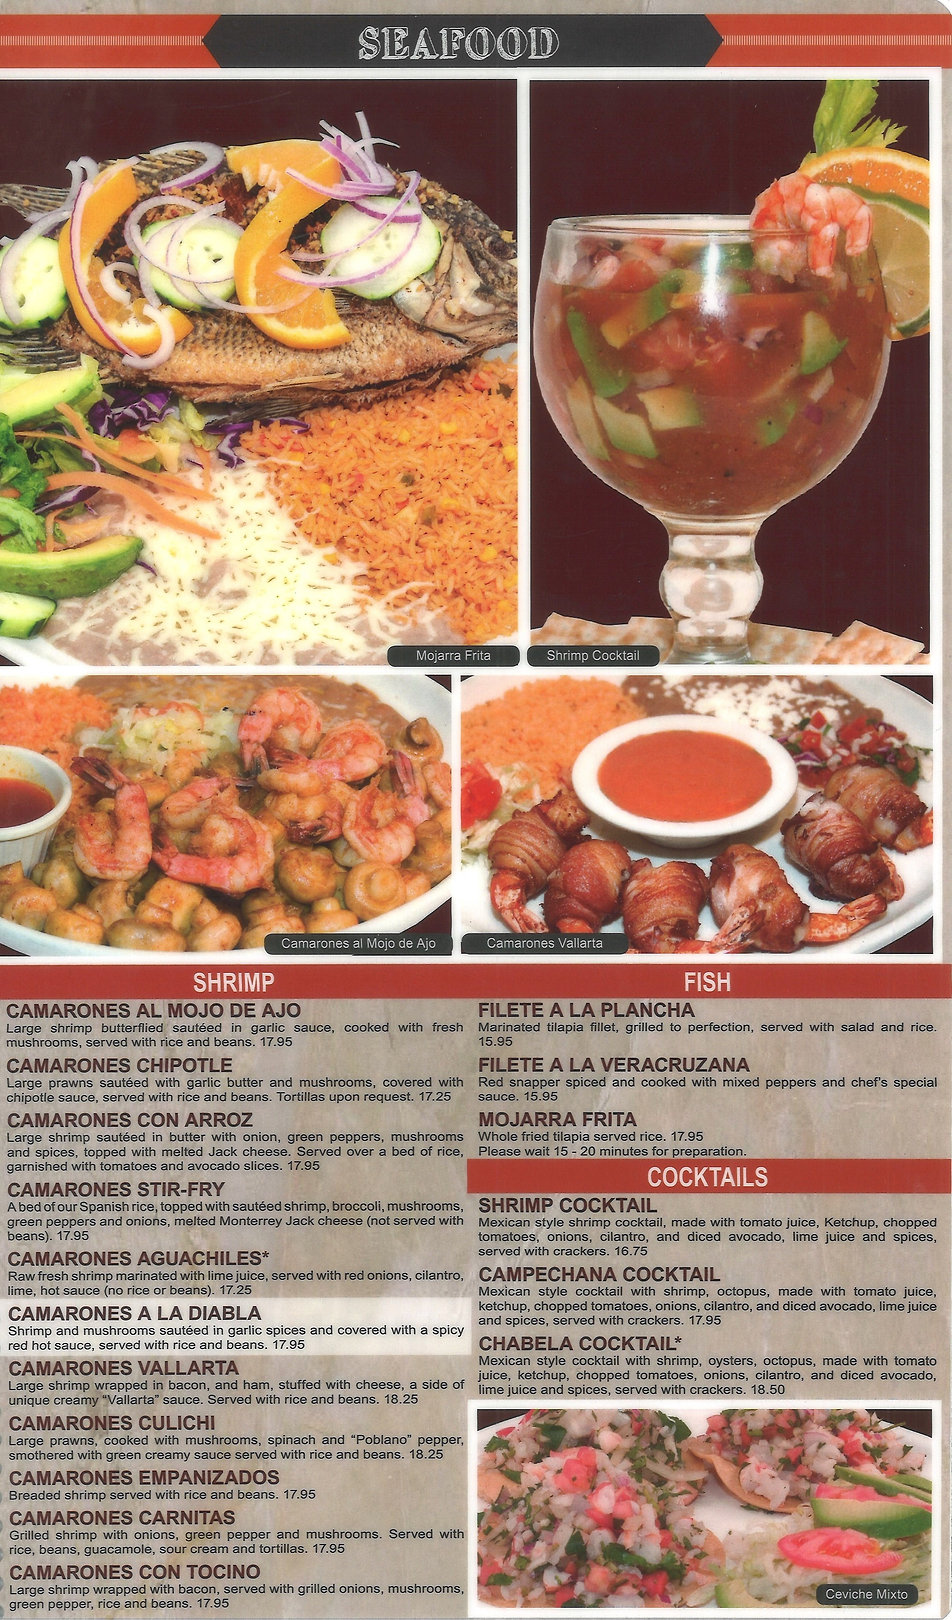 Hacienda Real Menu_ Seafood